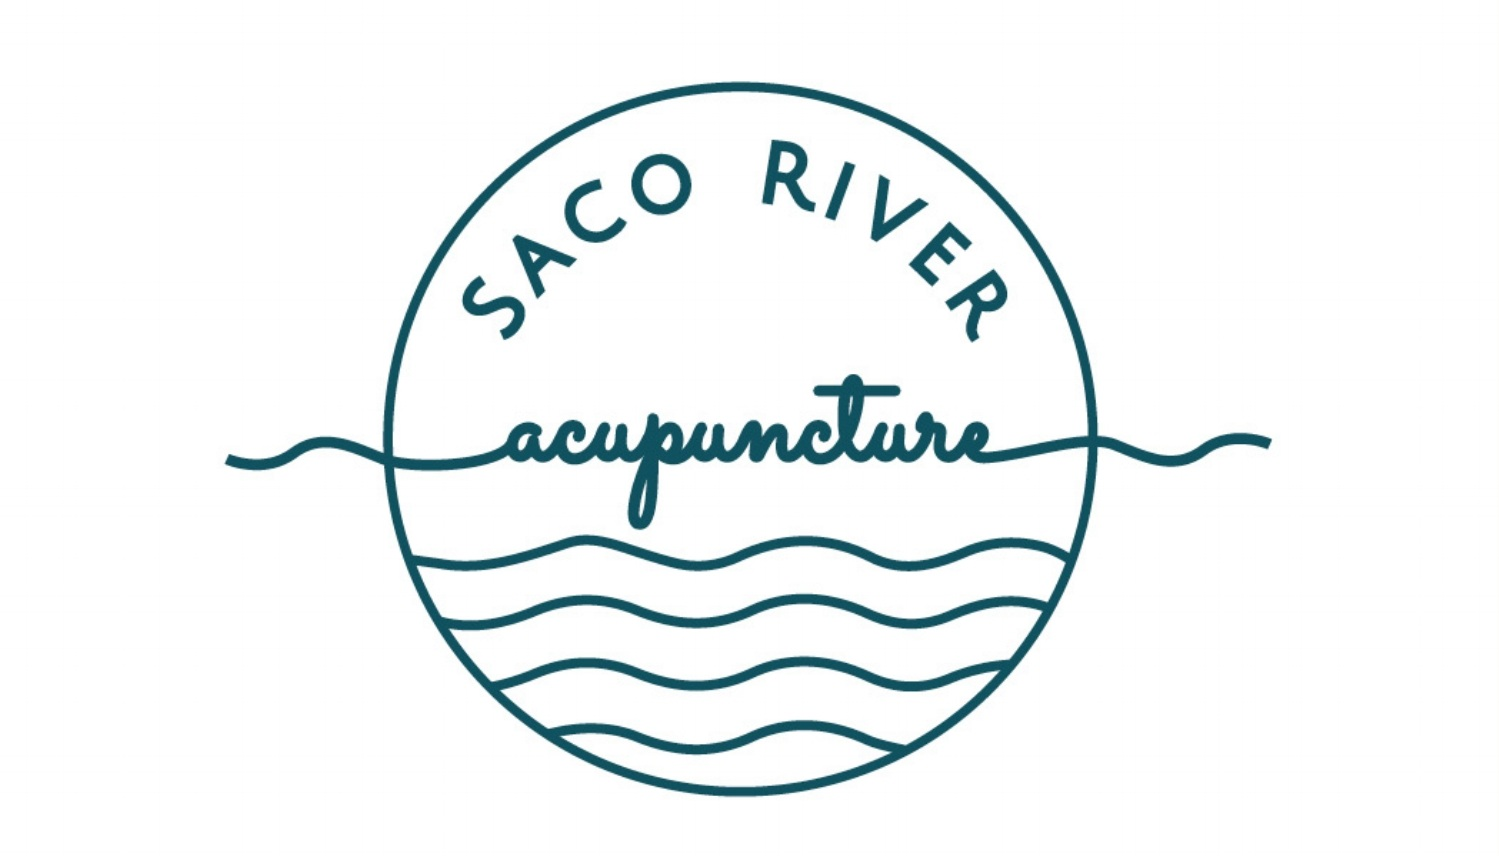 Saco River Acupuncture